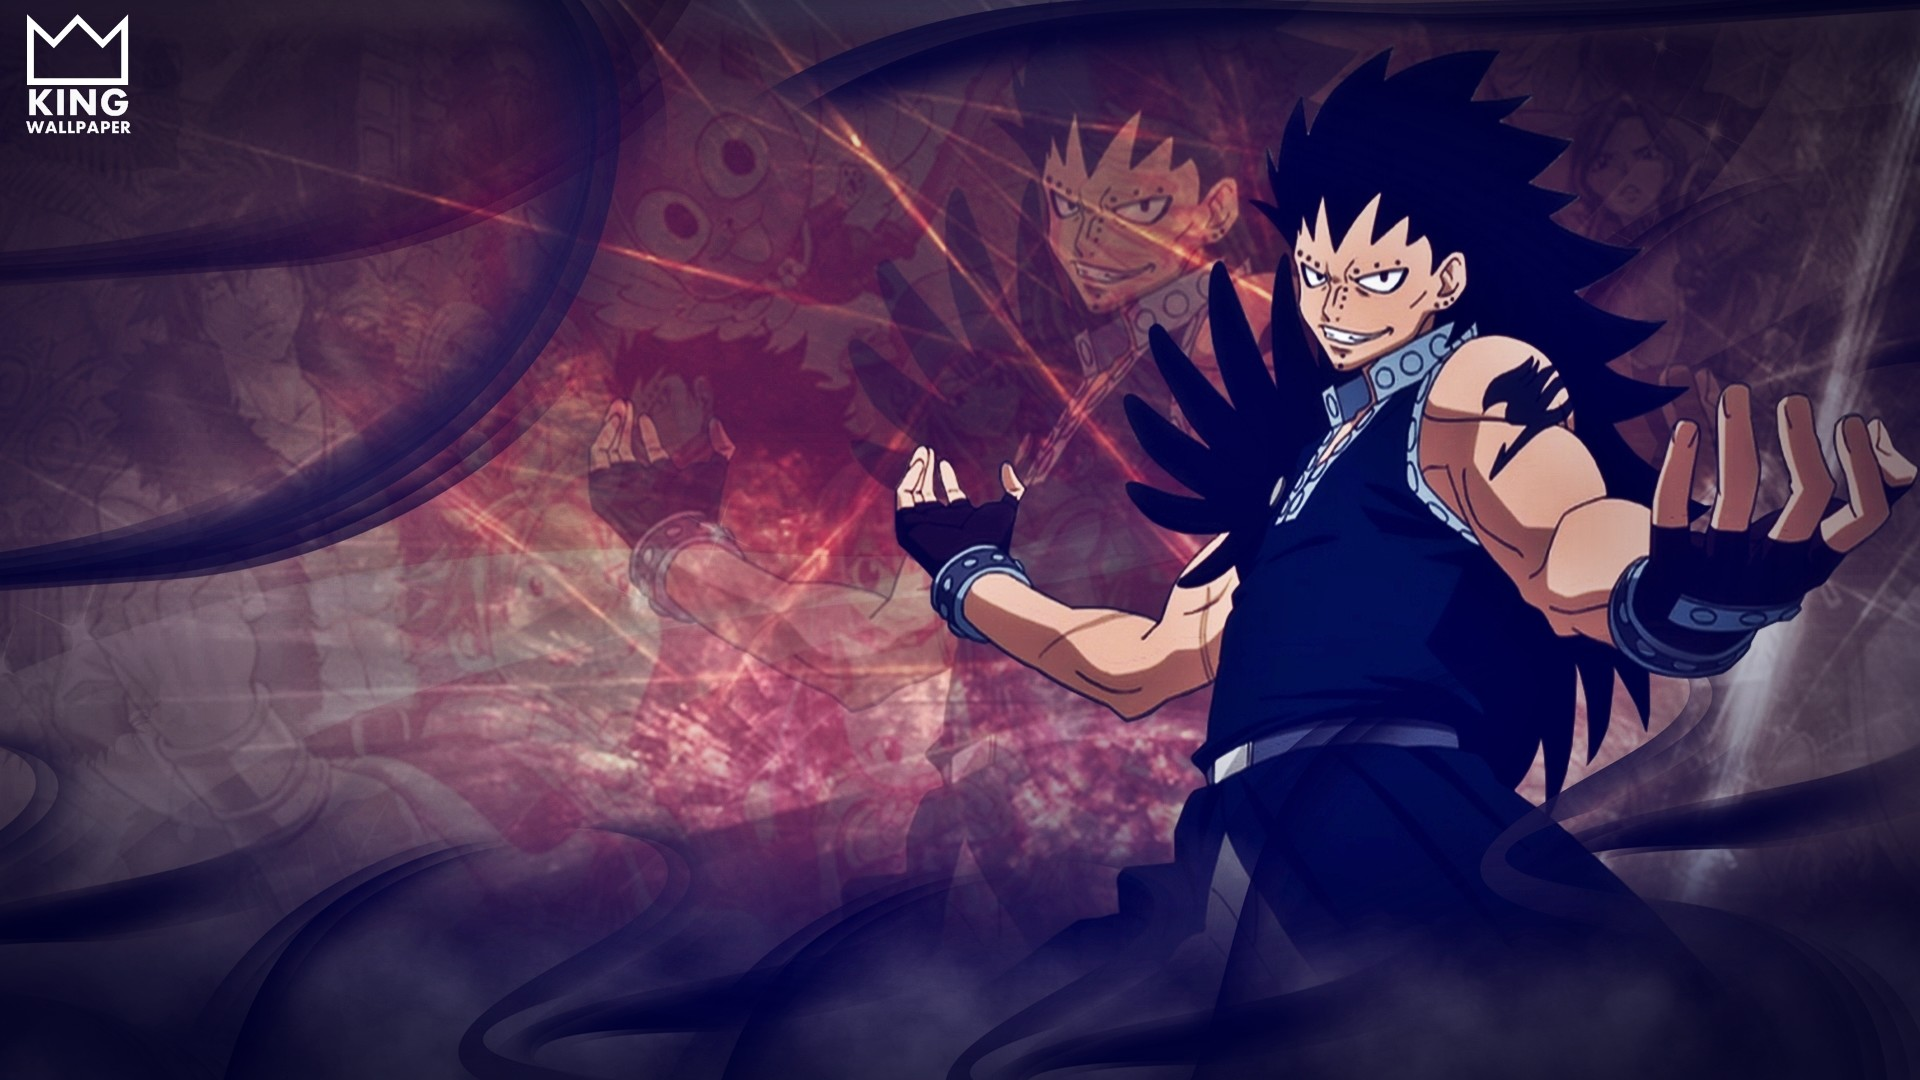 Res: 1920x1080, fairy tail wallpaper 3d